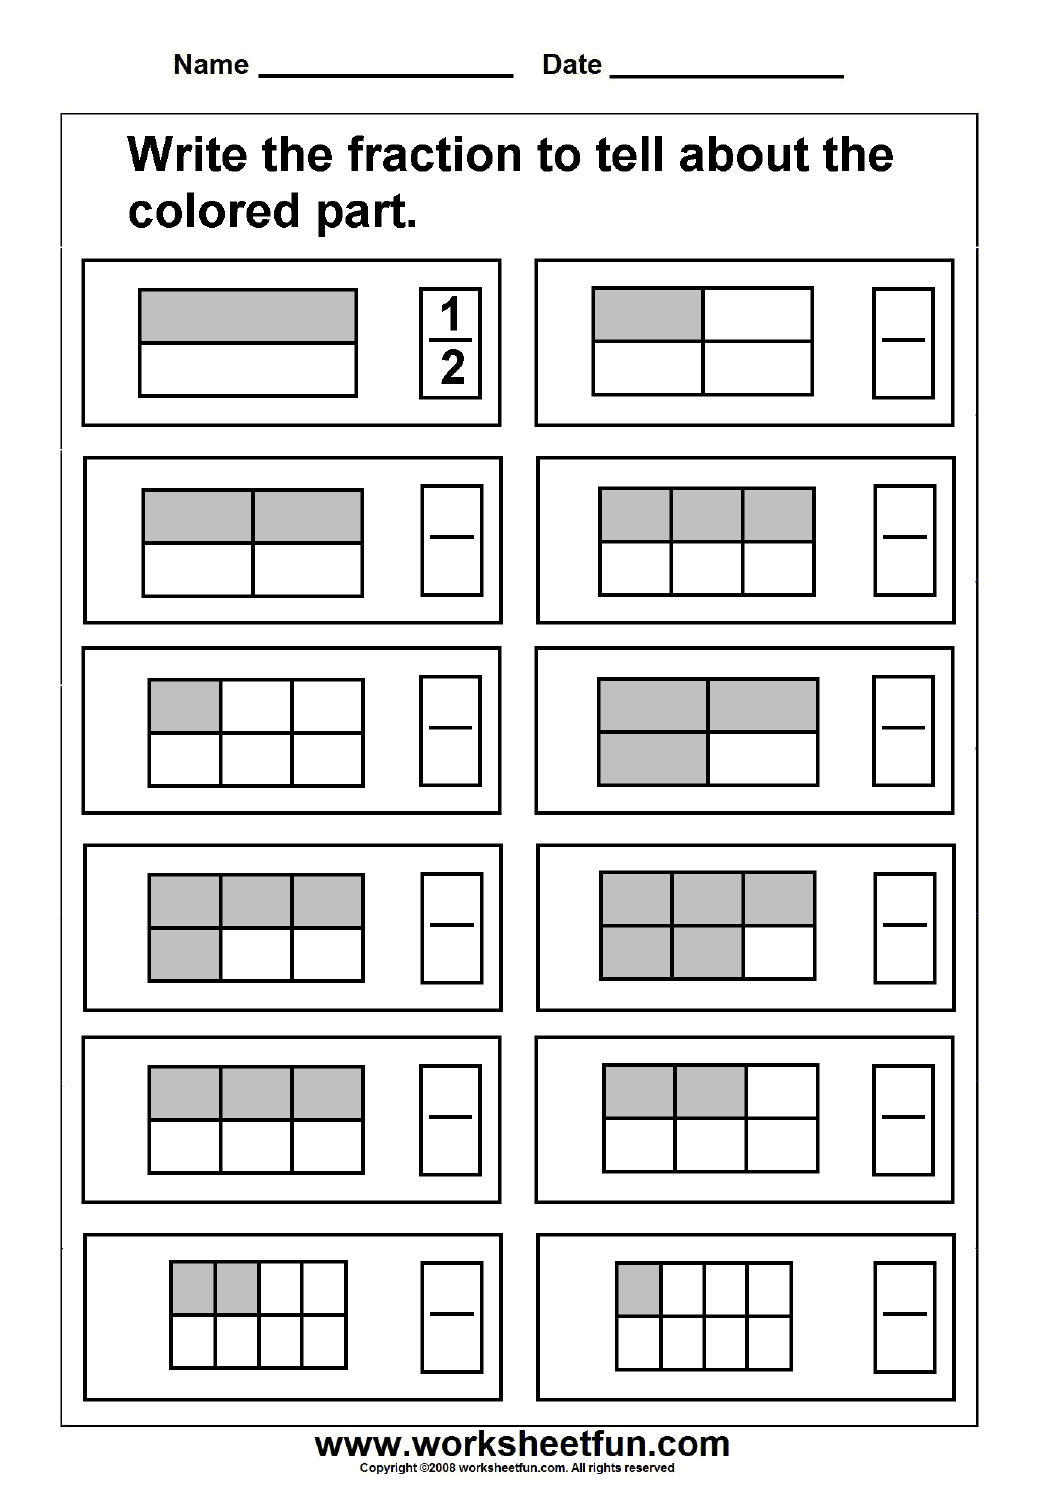 Fraction FREE Printable Worksheets Worksheetfun – Working with Fractions Worksheets